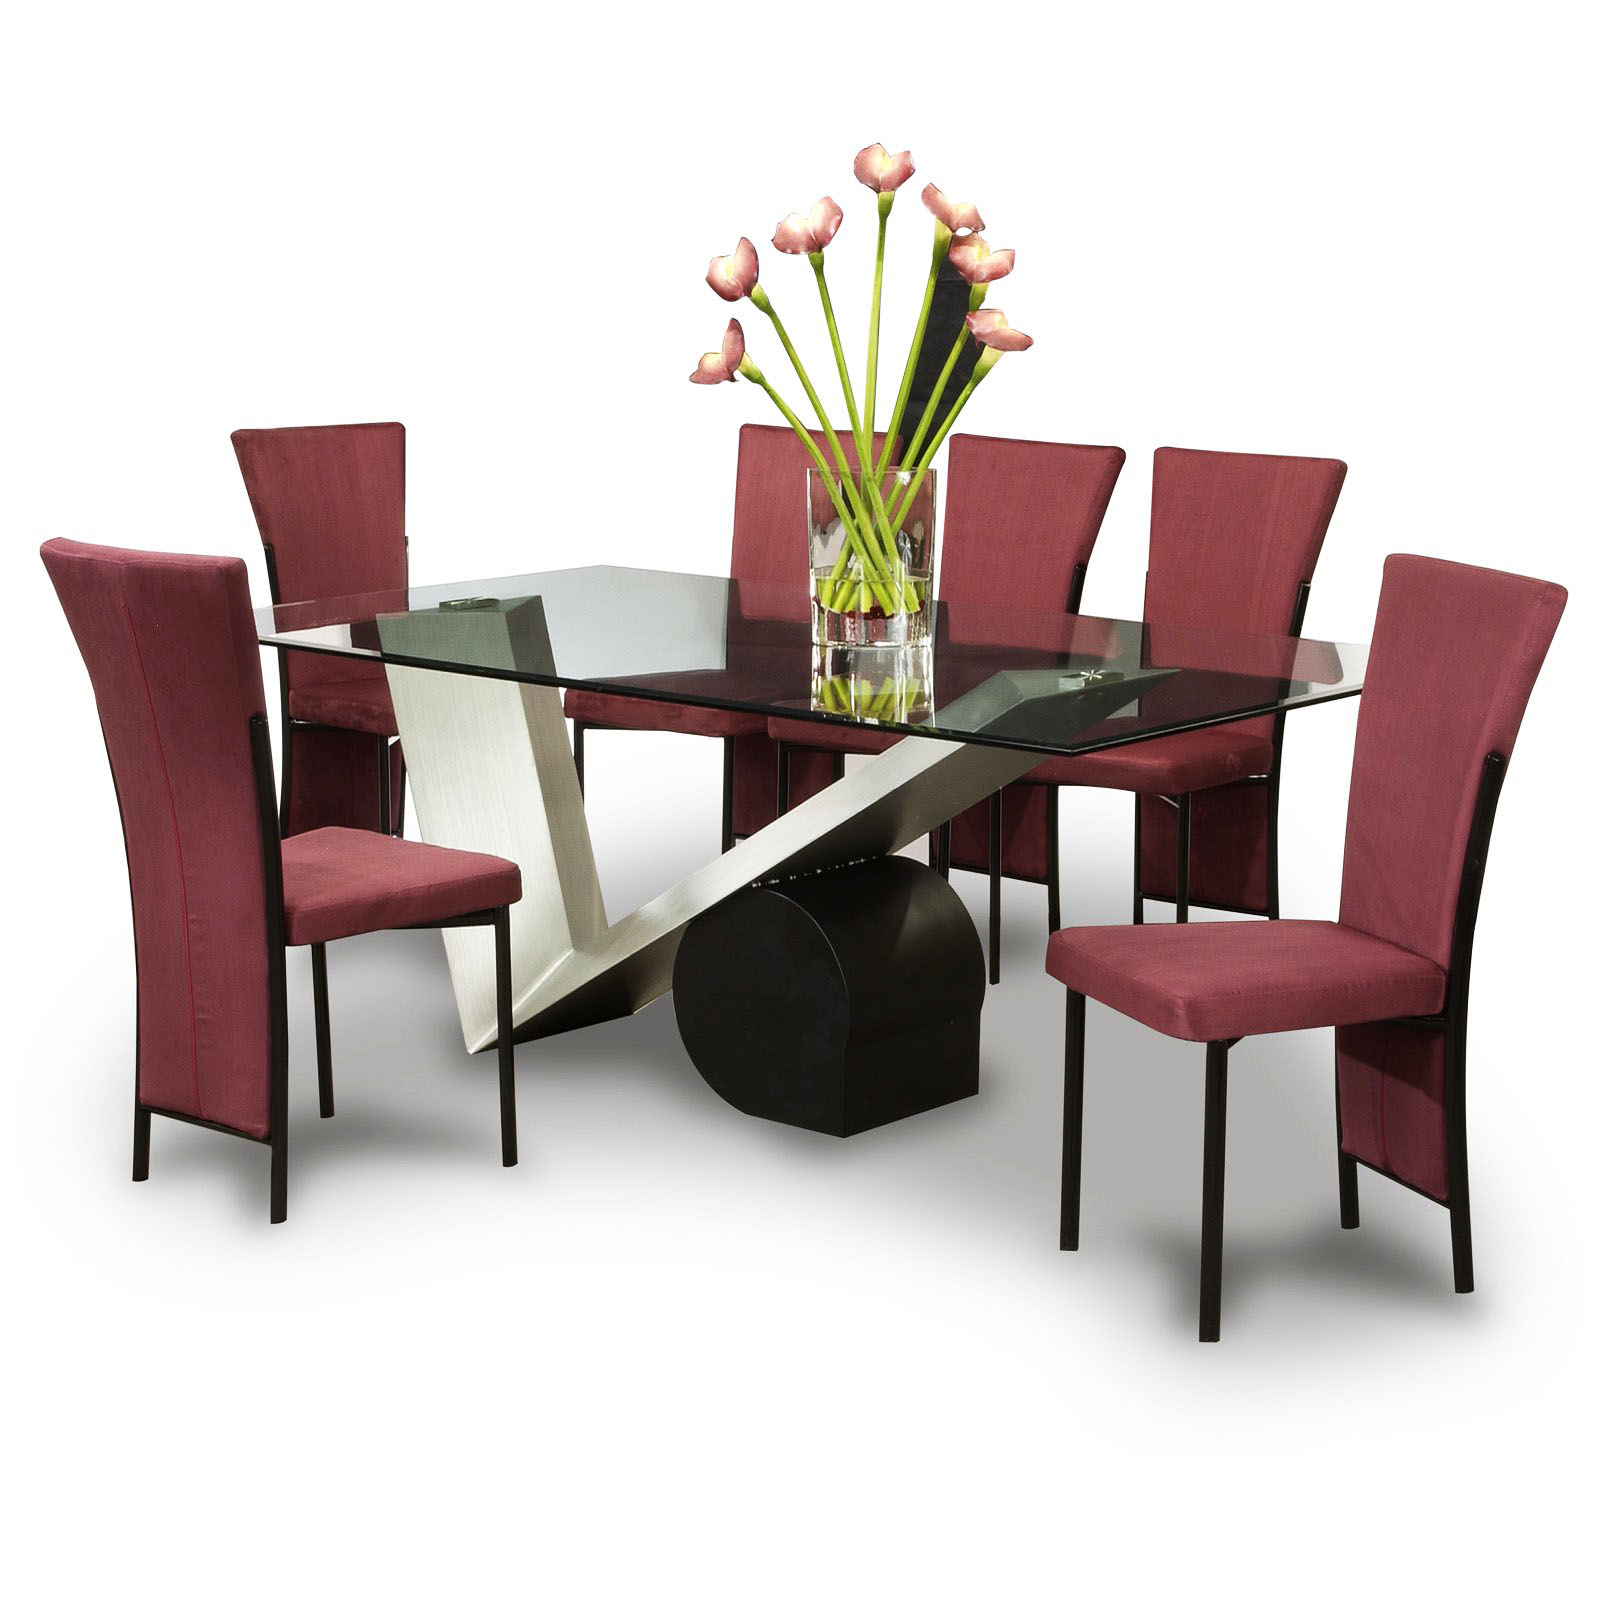 Buy Modern Look Dining Table with 6 Chairs in Mumbai : modern dining room table set 2781 from www.onlinesofadesign.com size 1600 x 1600 jpeg 207kB